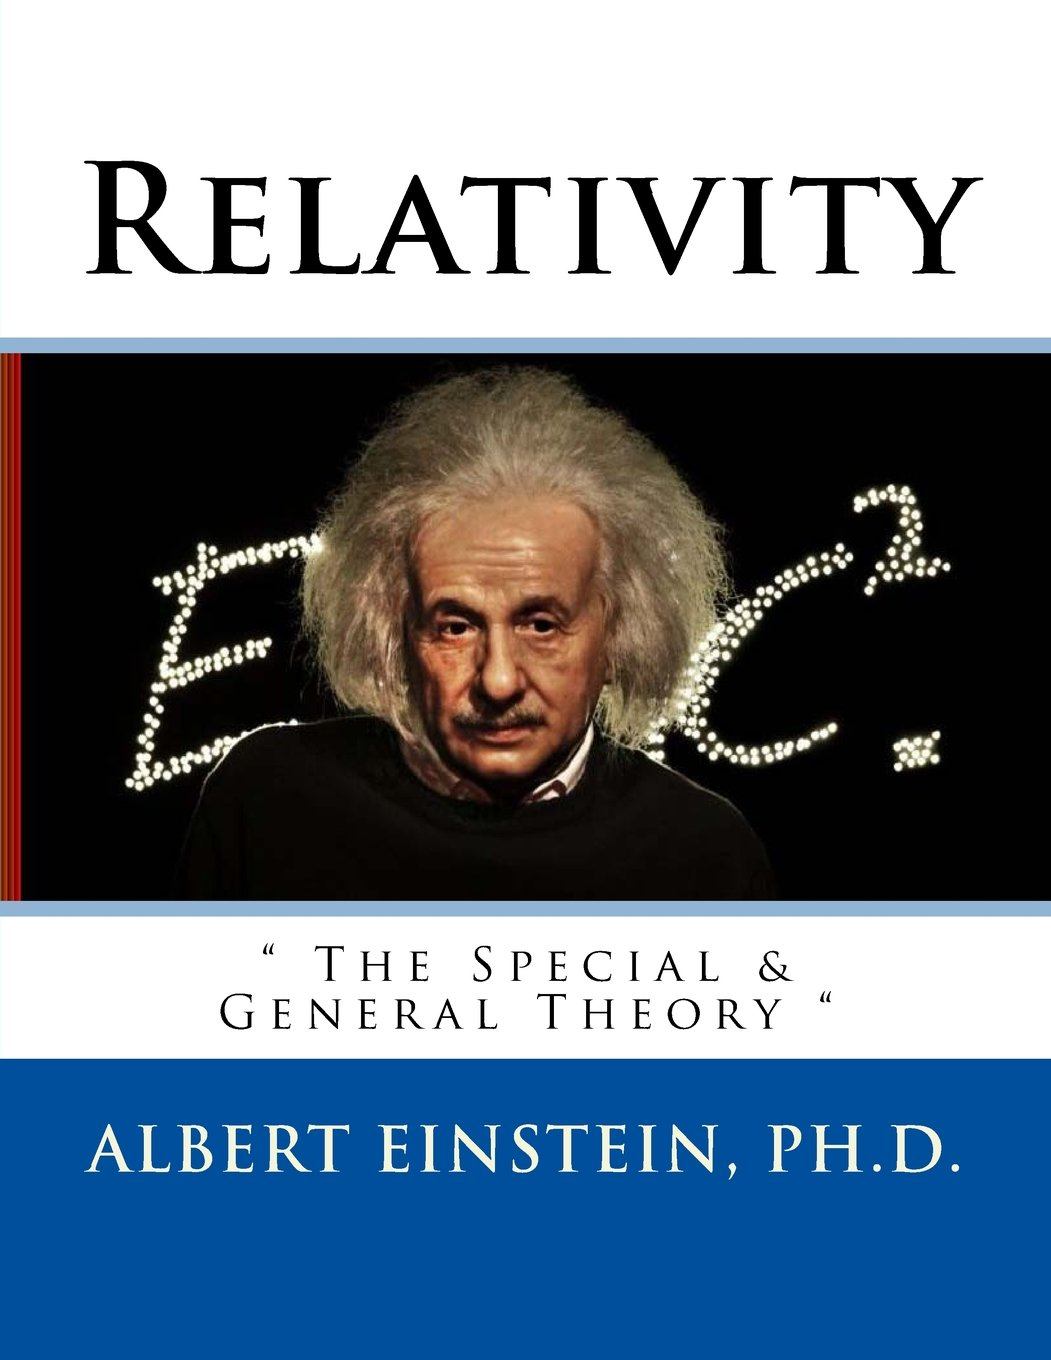 Relativity: The Special & General Theory pdf